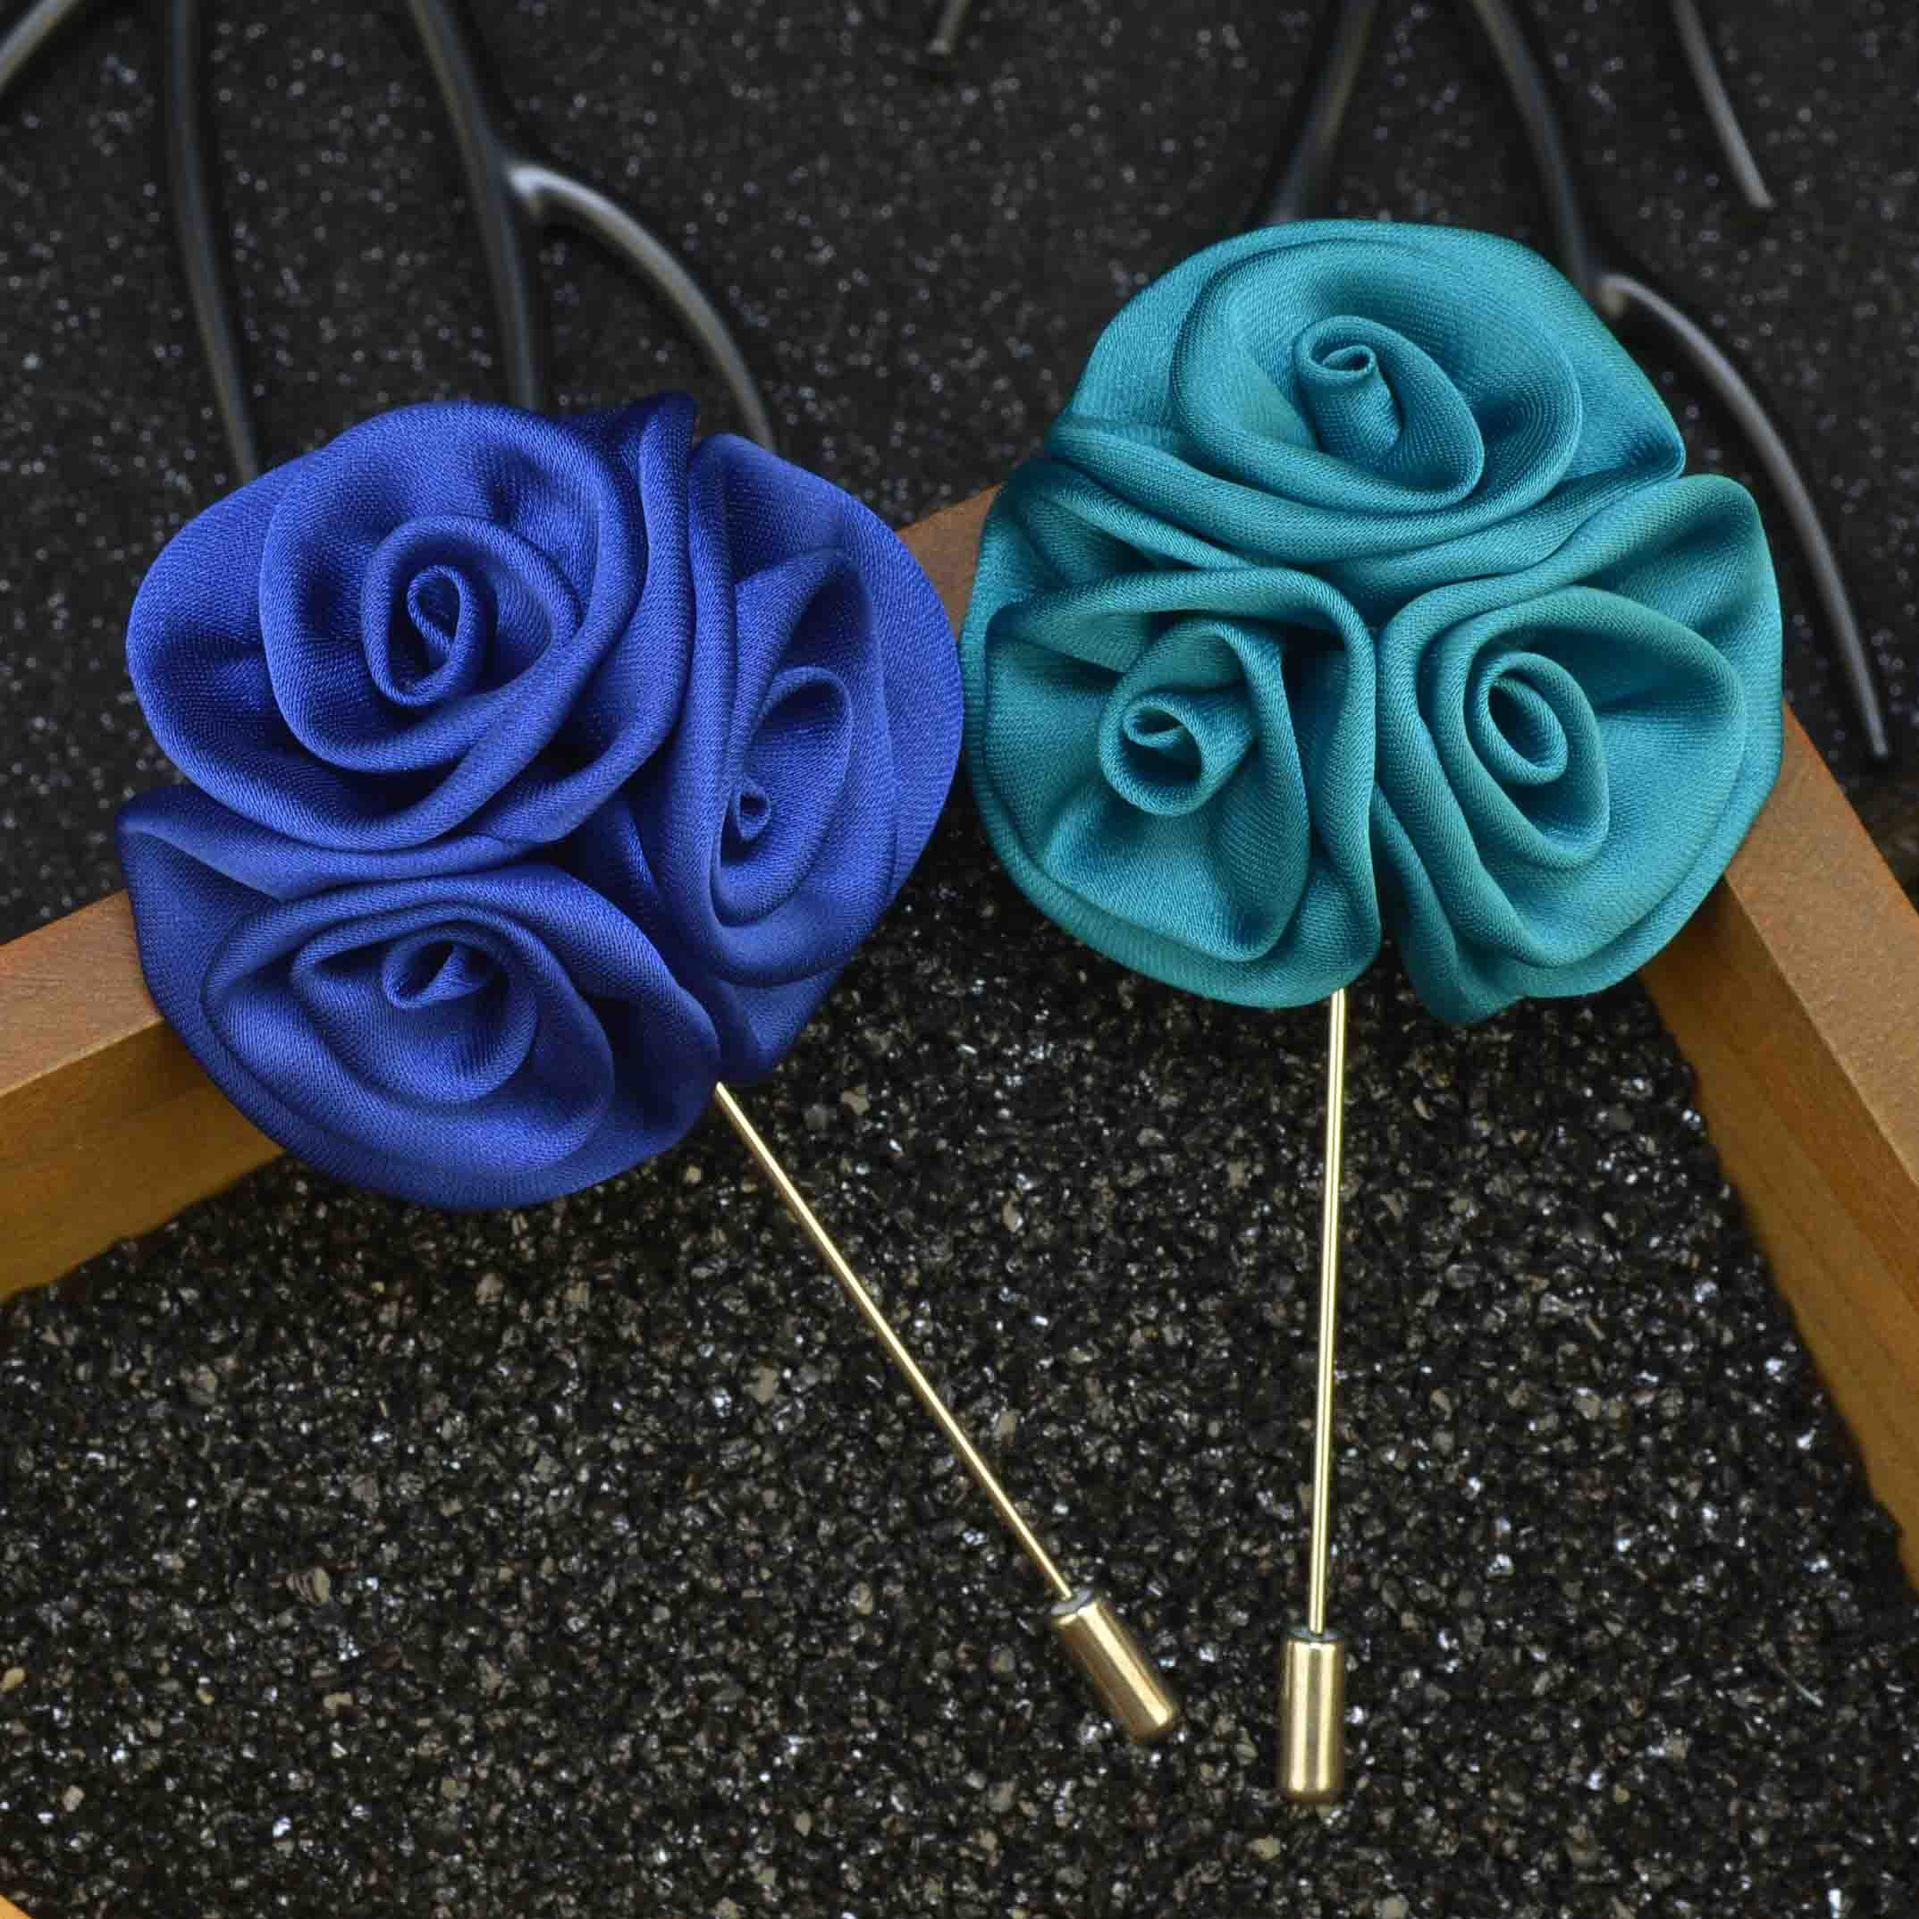 2018 2017 silk rose flowers brooch lapel pins fashion handmade 2018 2017 silk rose flowers brooch lapel pins fashion handmade boutonniere stick gentleman suit brooches pin women men accessories gift h6604 from kimi1102 mightylinksfo